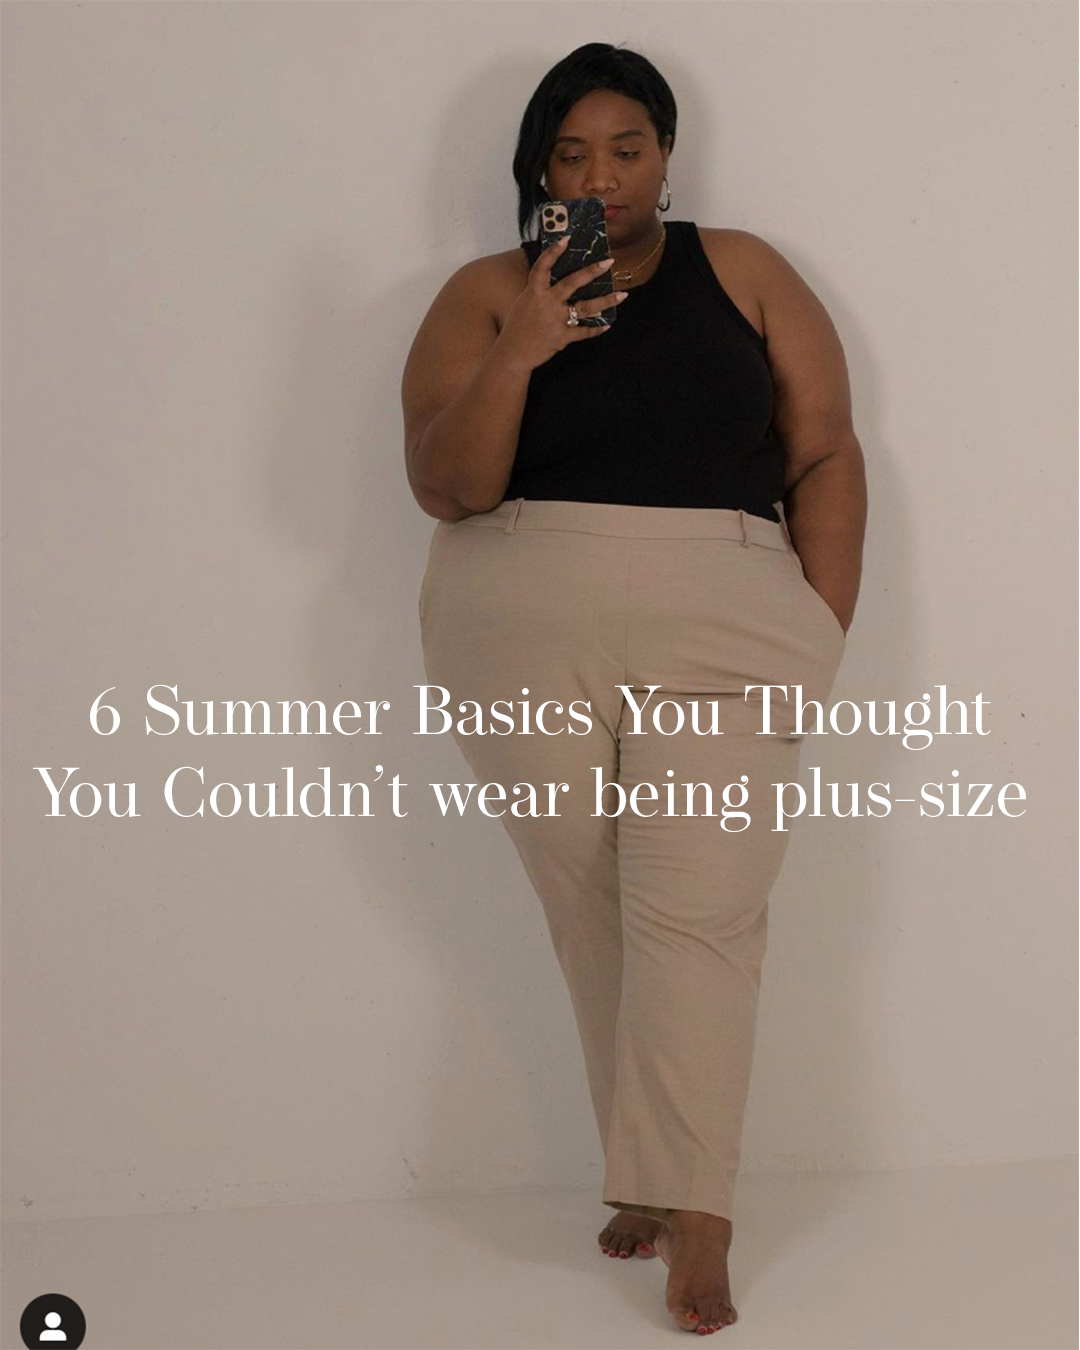 6 Summer Basics You Bought You Couldn't Wear Being Plus-size